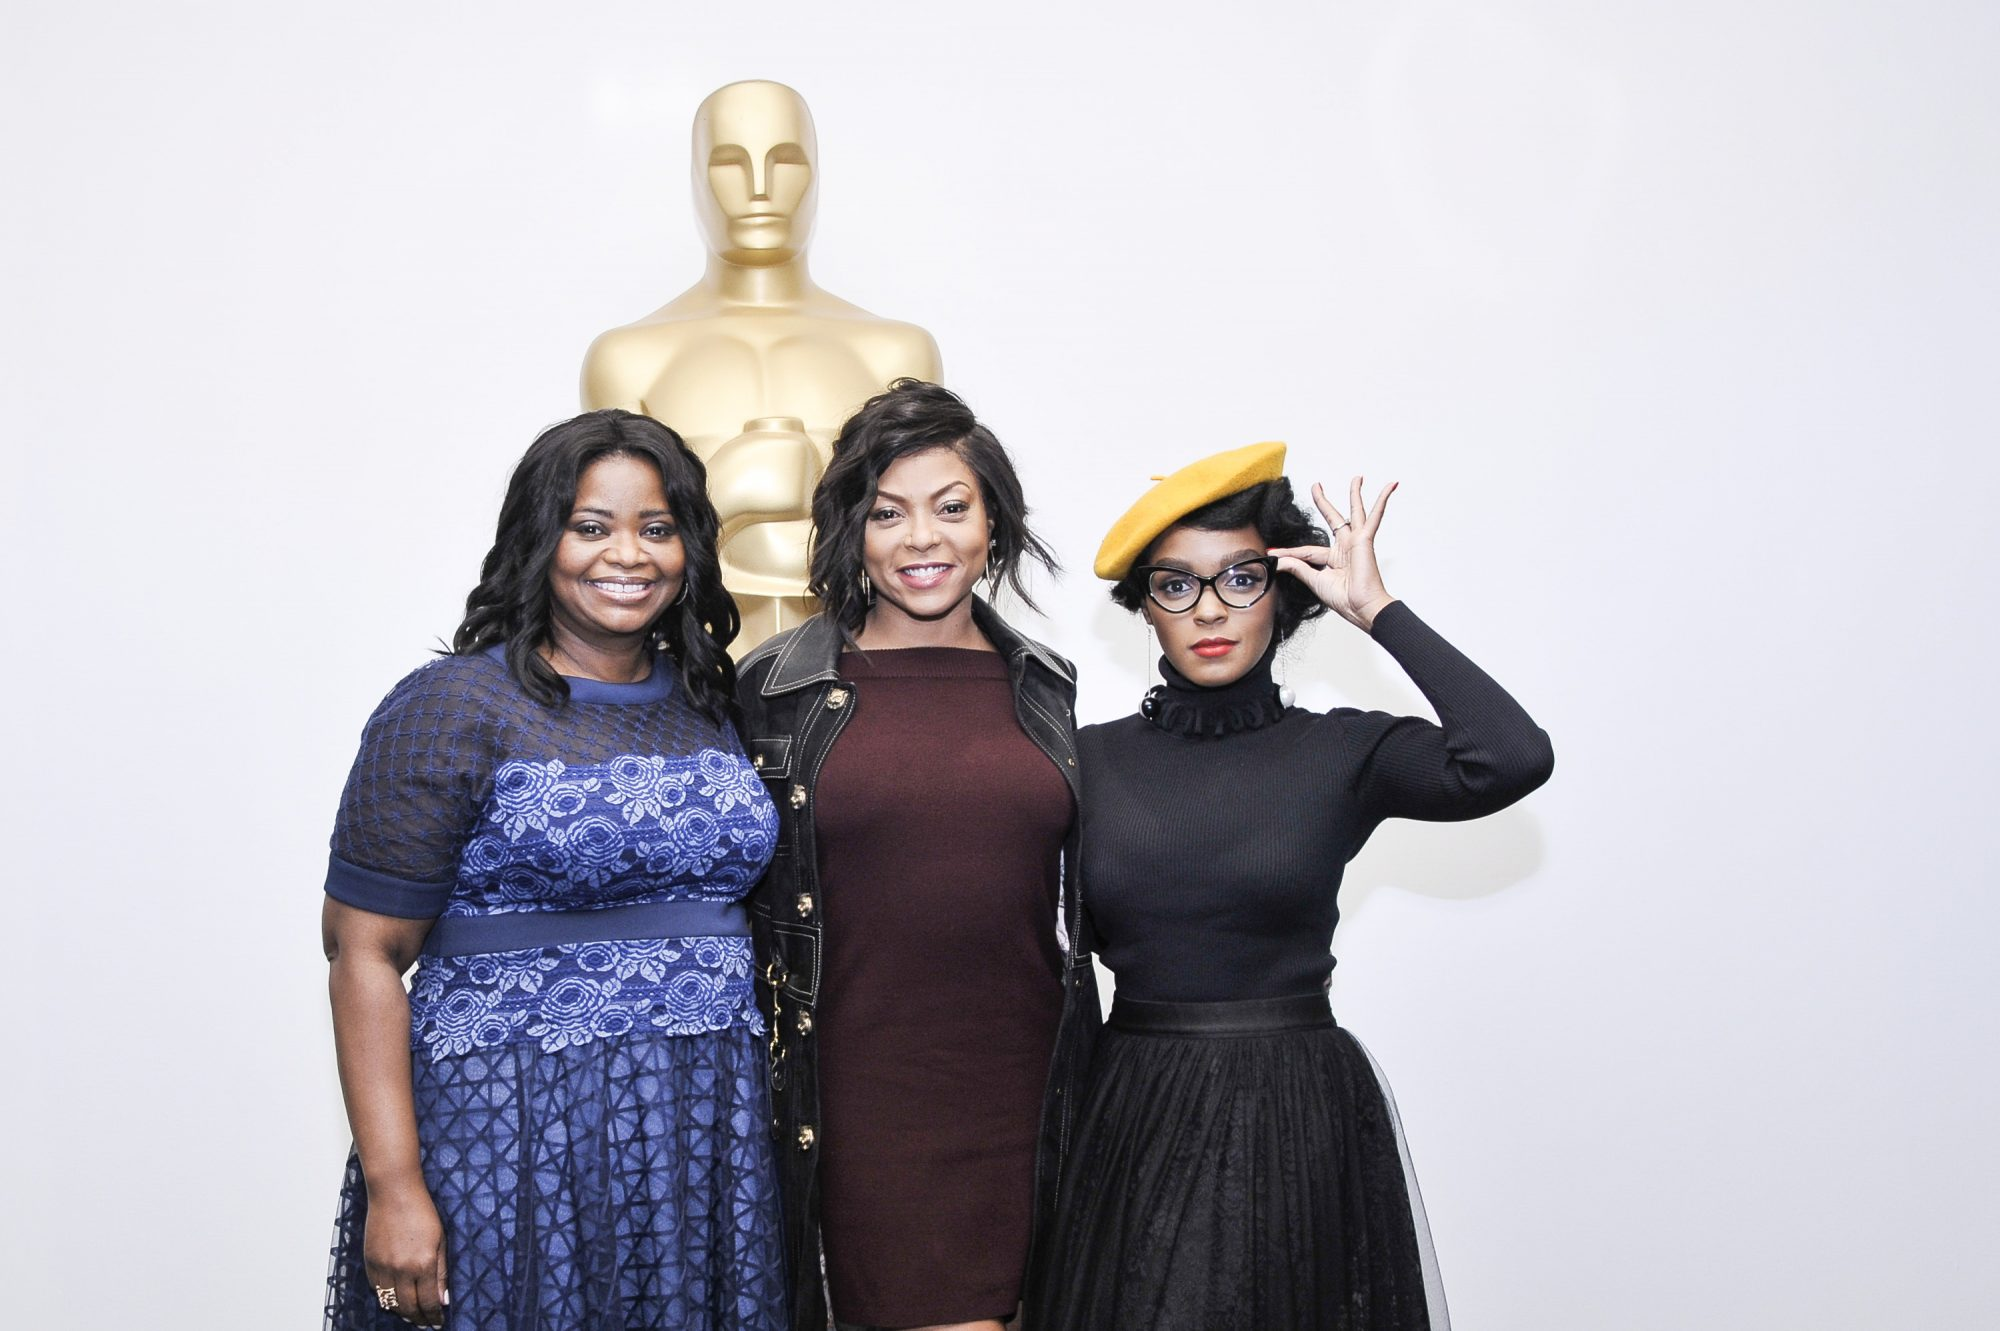 Hidden Figures Cast: Octavia Spencer, Taraji P. Henson, and Janelle Monáe